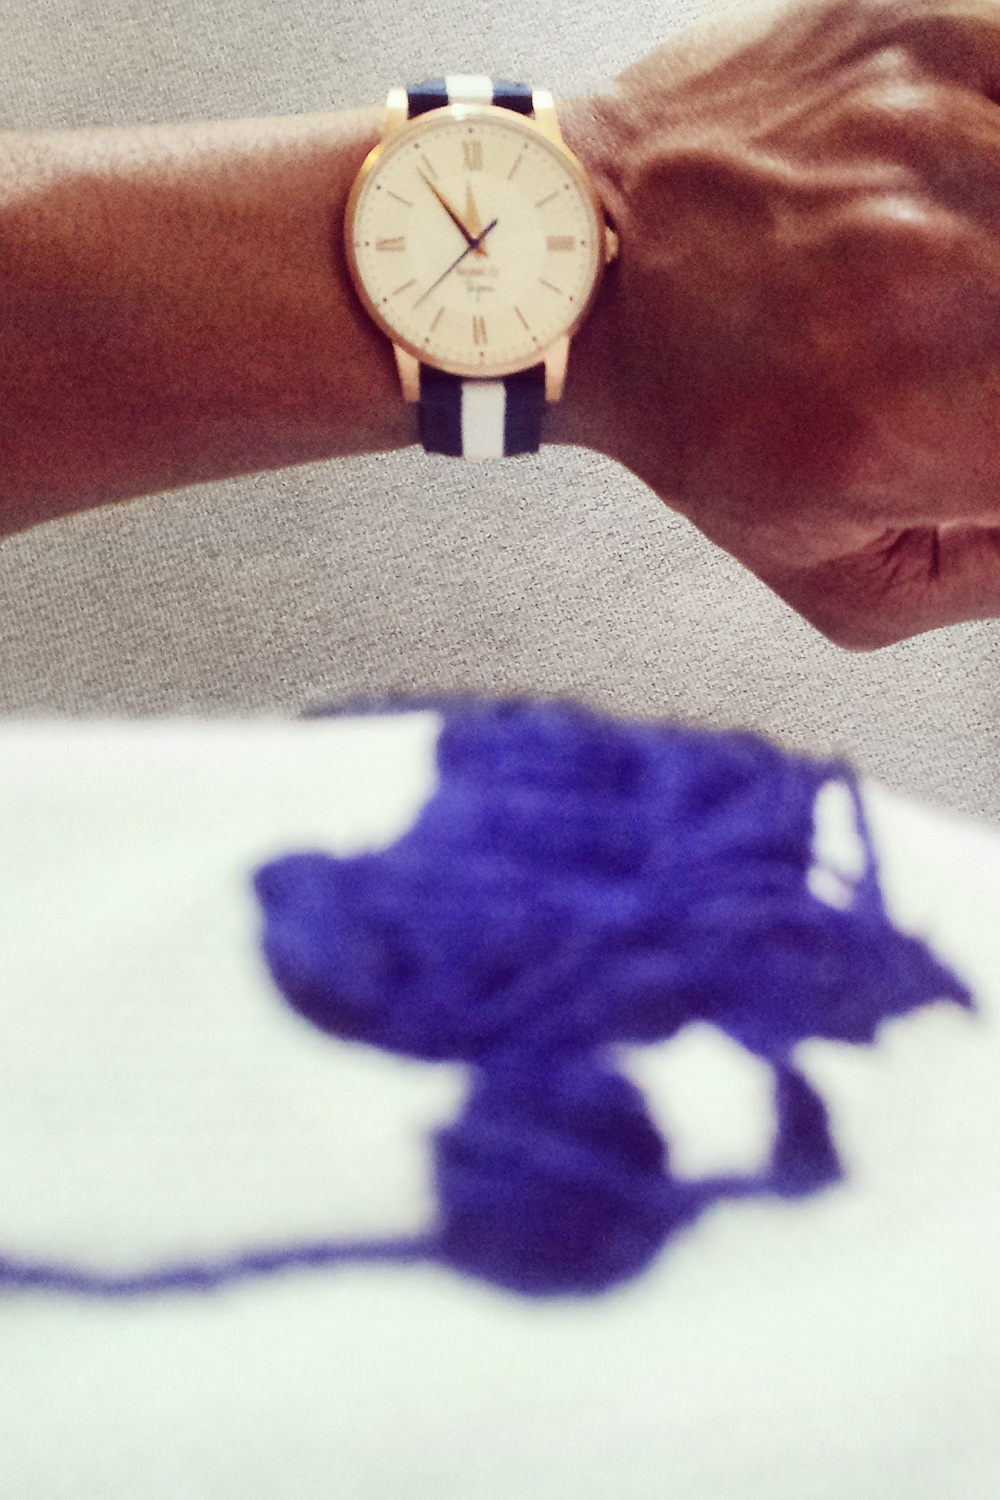 Ralph lauren polo with preppy nautical fashion watch band